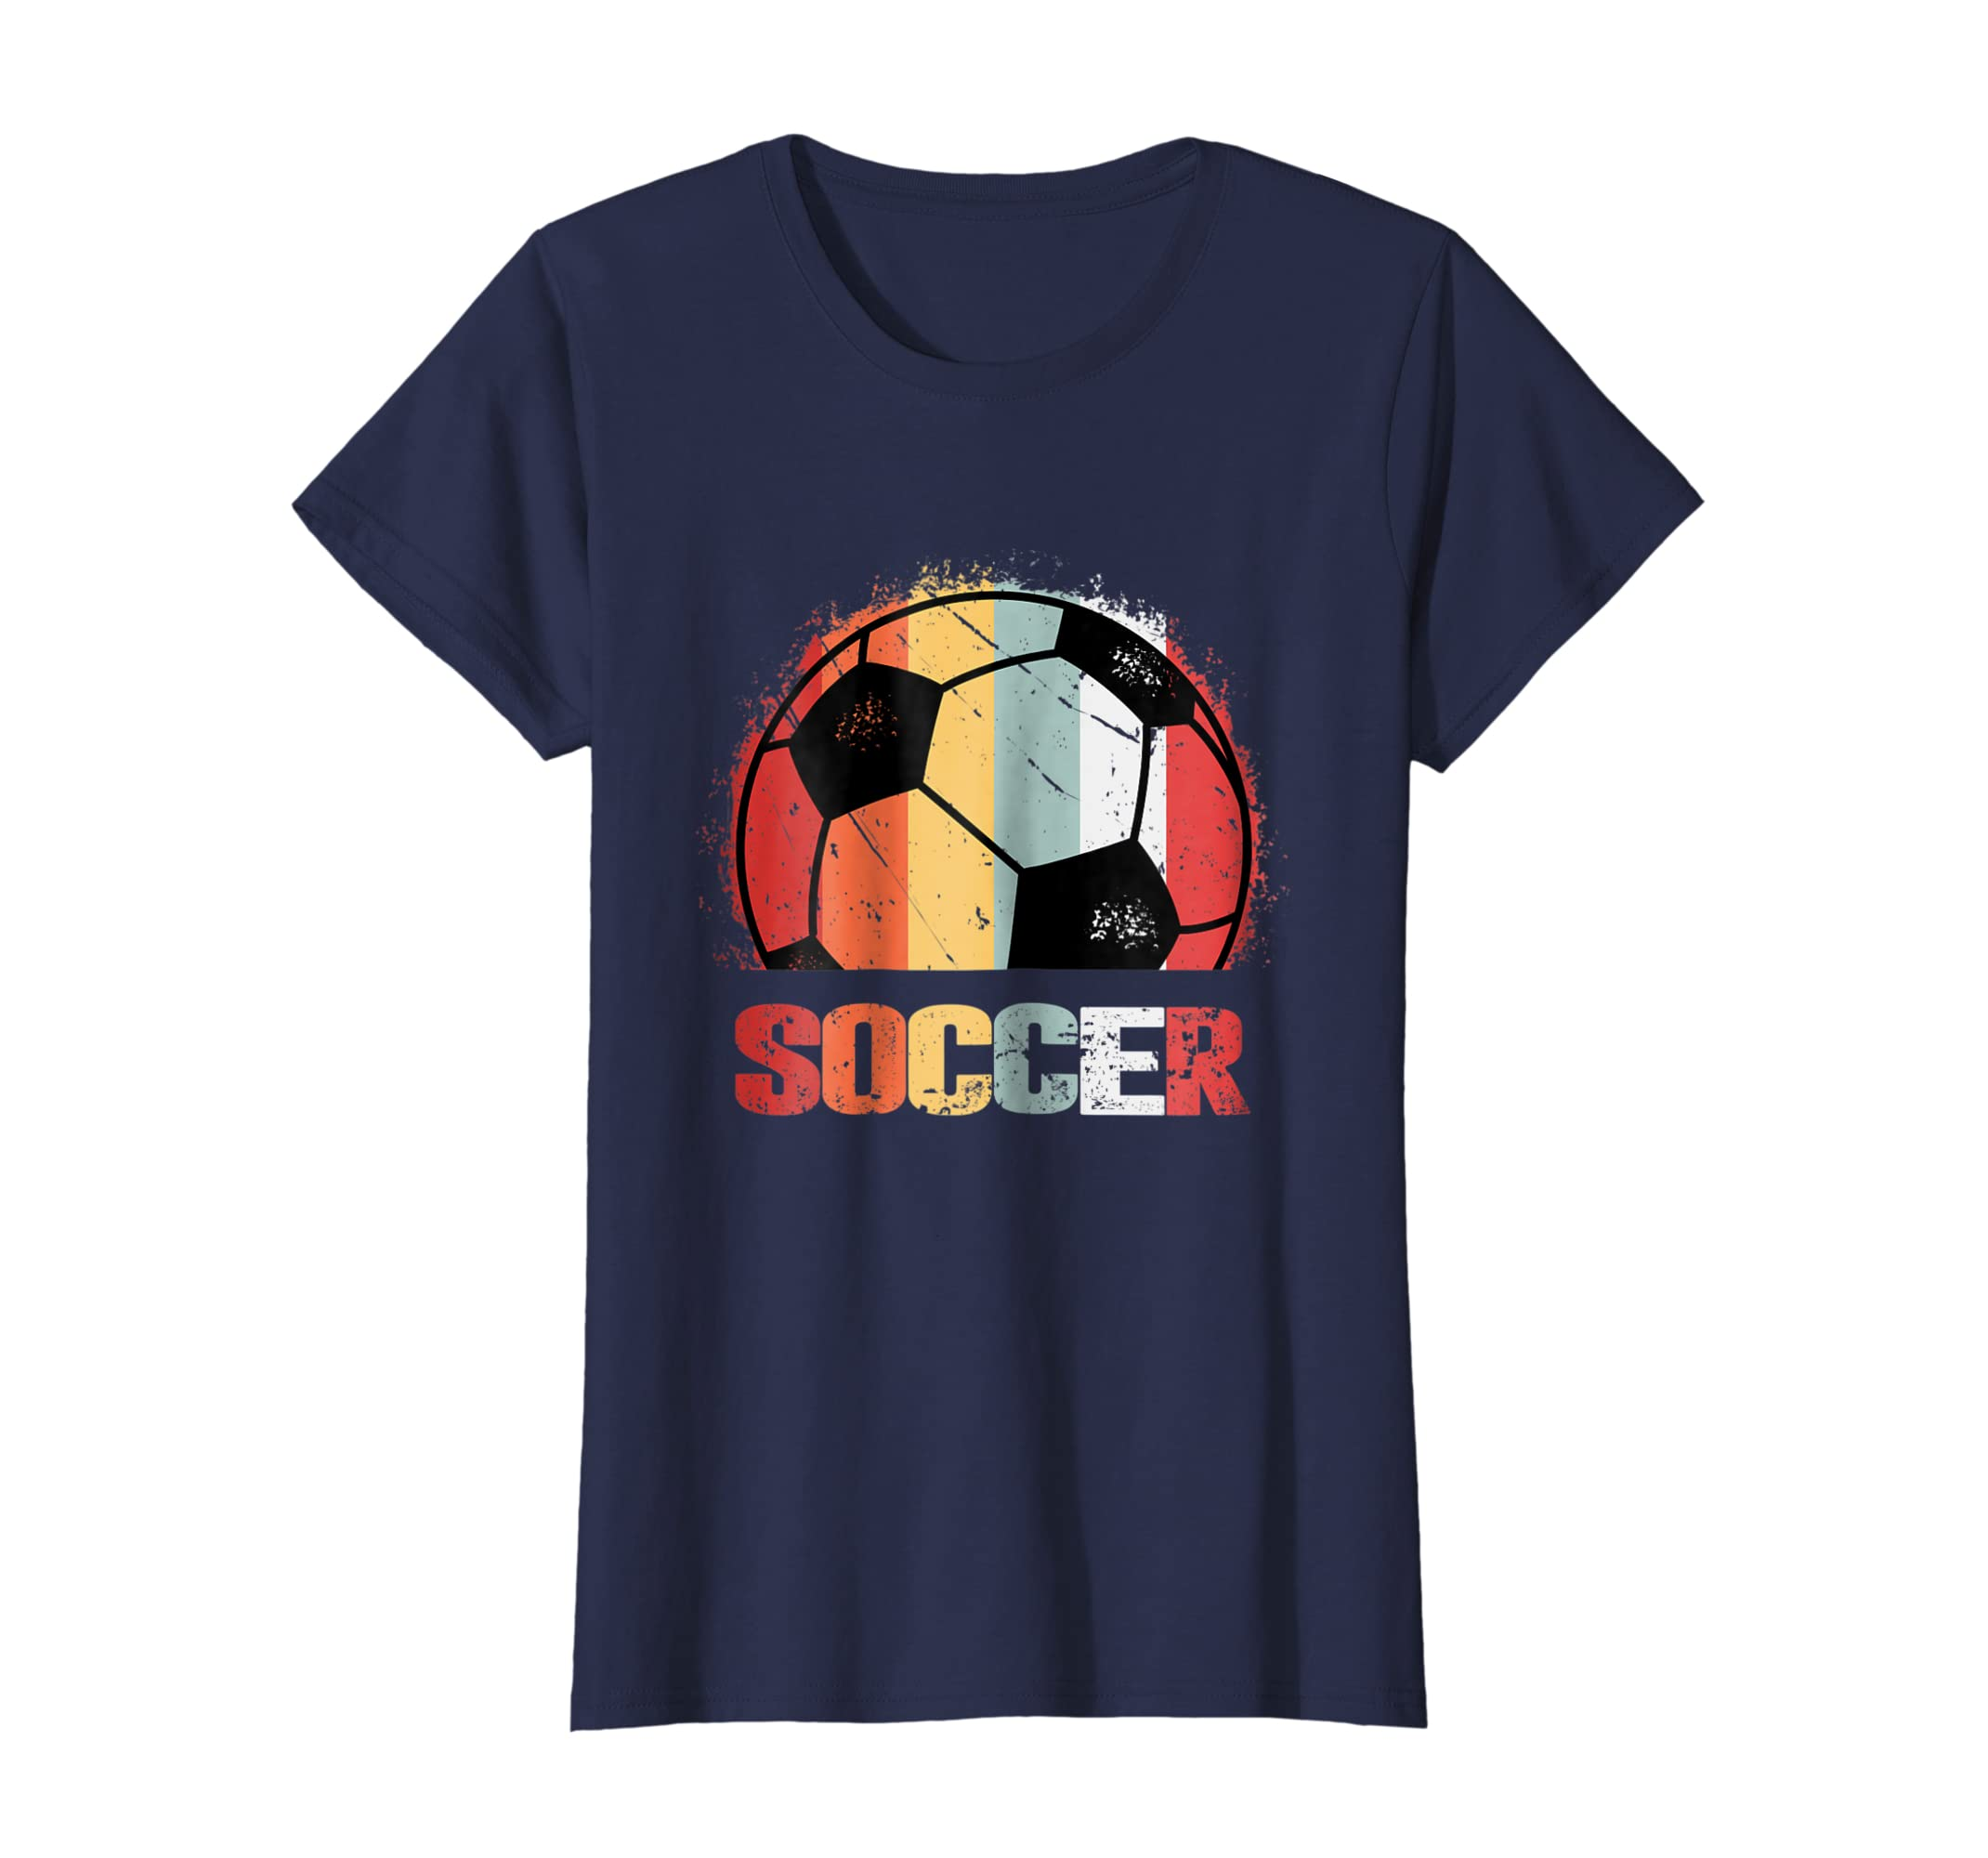 7f6f0d83e Amazon.com  vintage Soccer T-shirt Funny Sports Chirstmas Shirts  Clothing